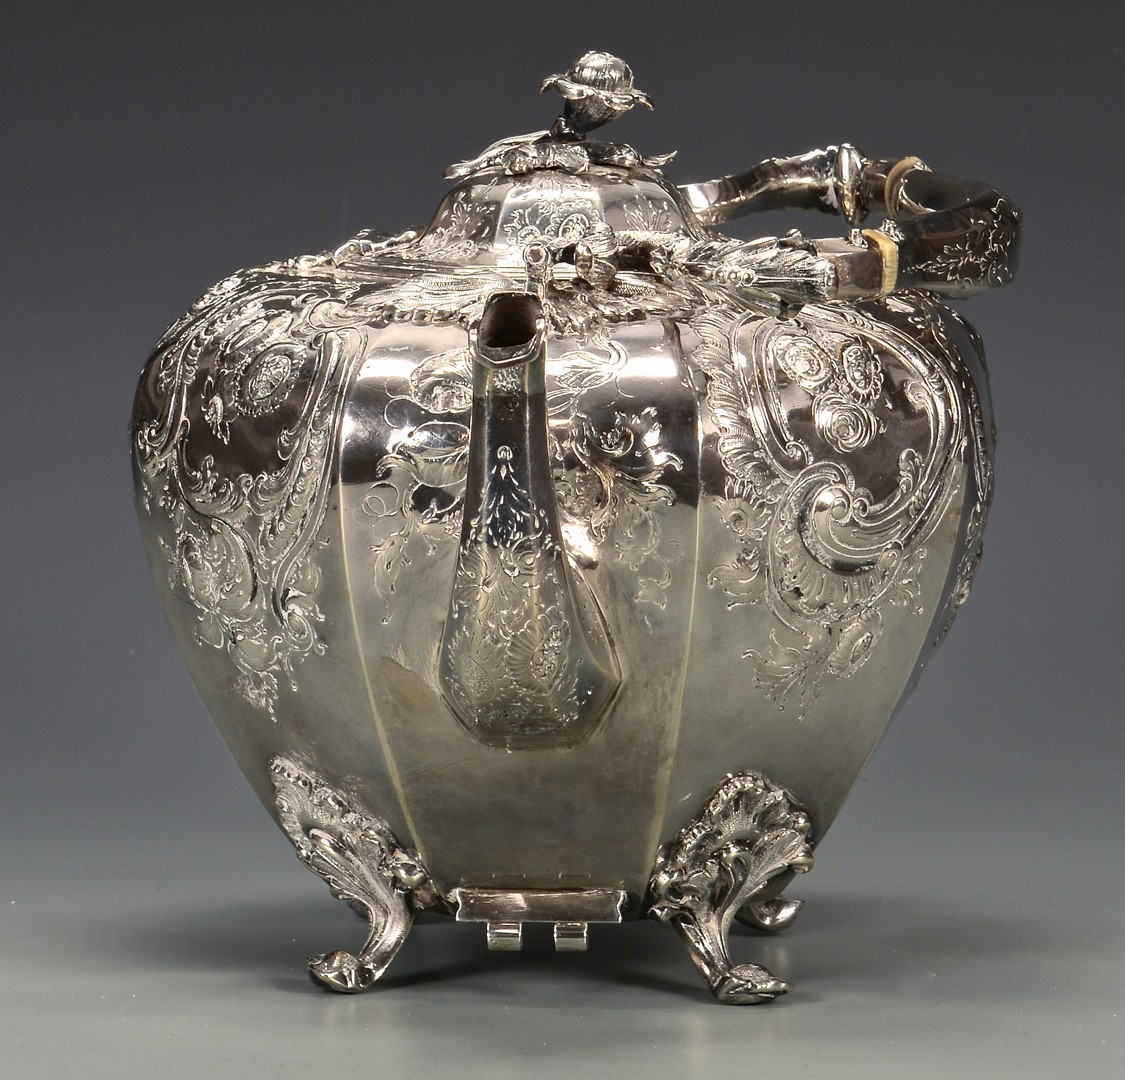 Lot 320: Coin Silver Tea Kettle with stand and burner